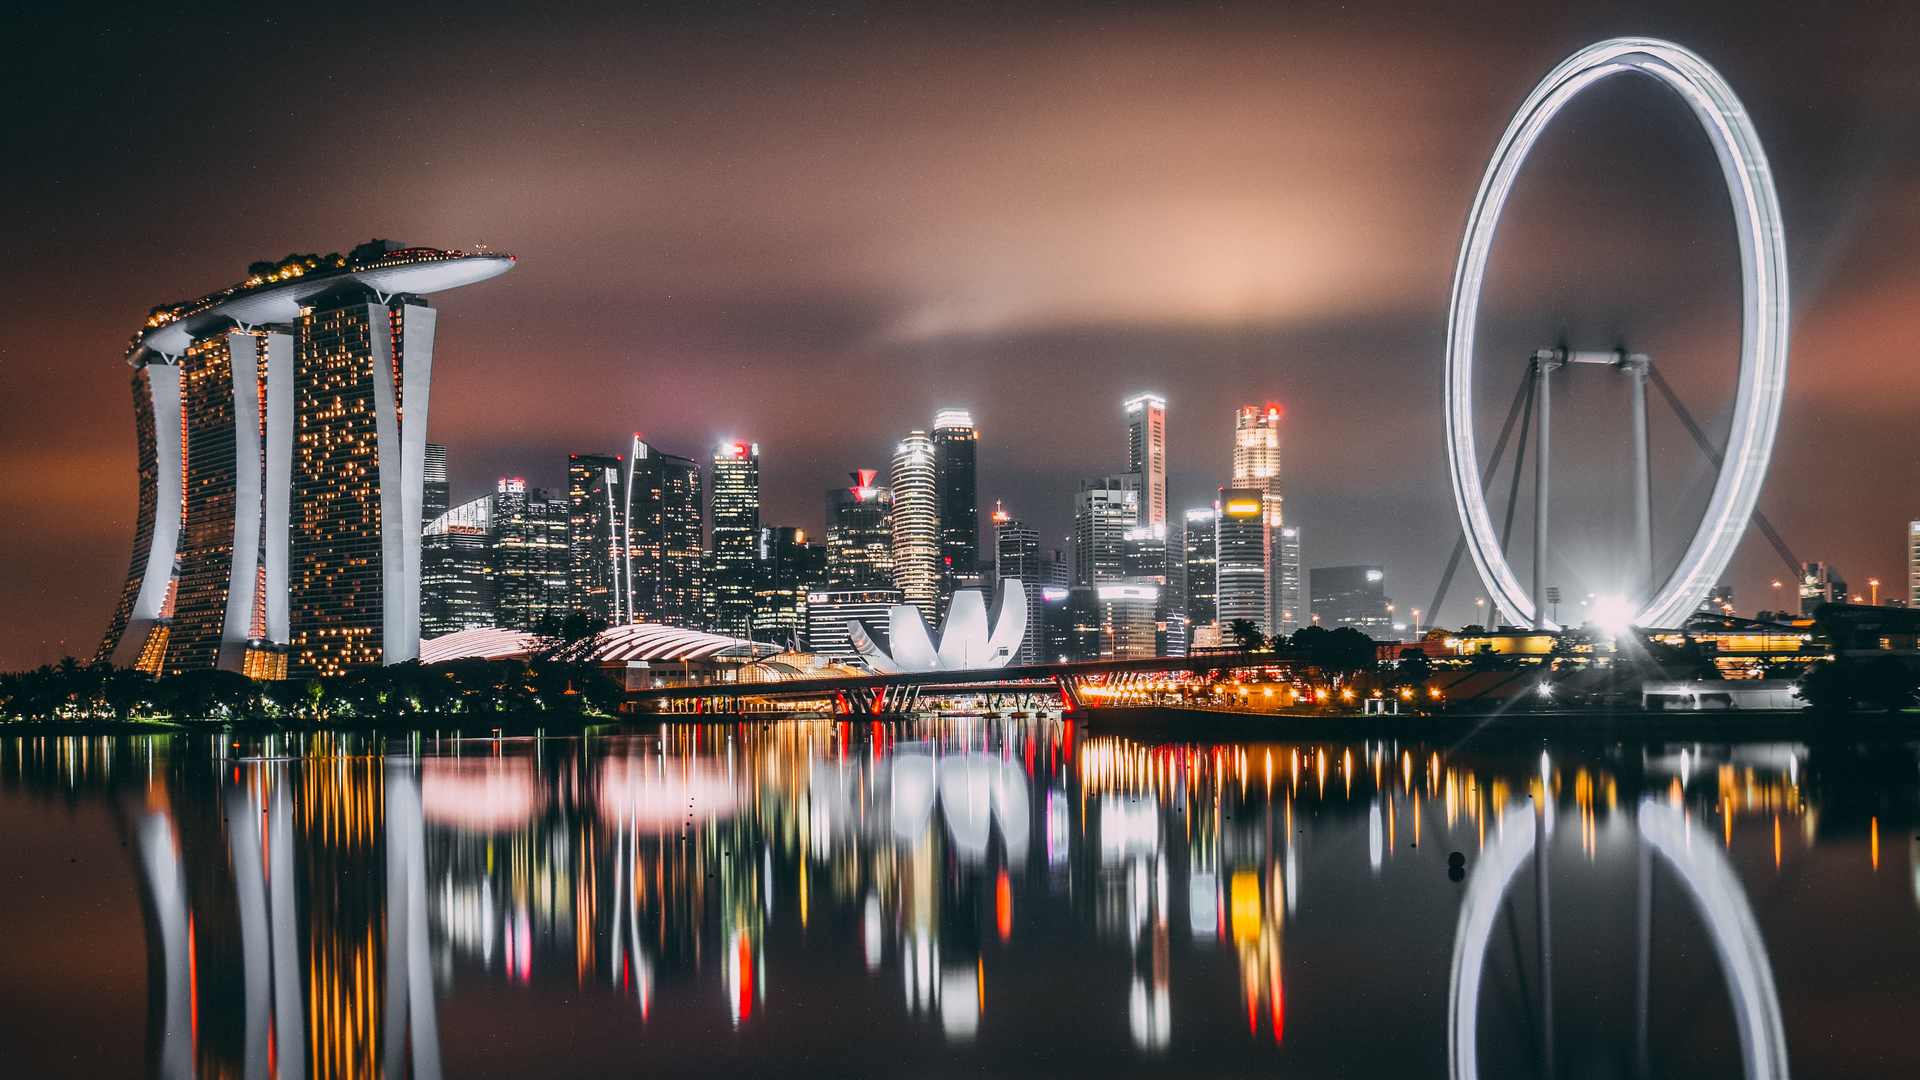 A view in Singapore